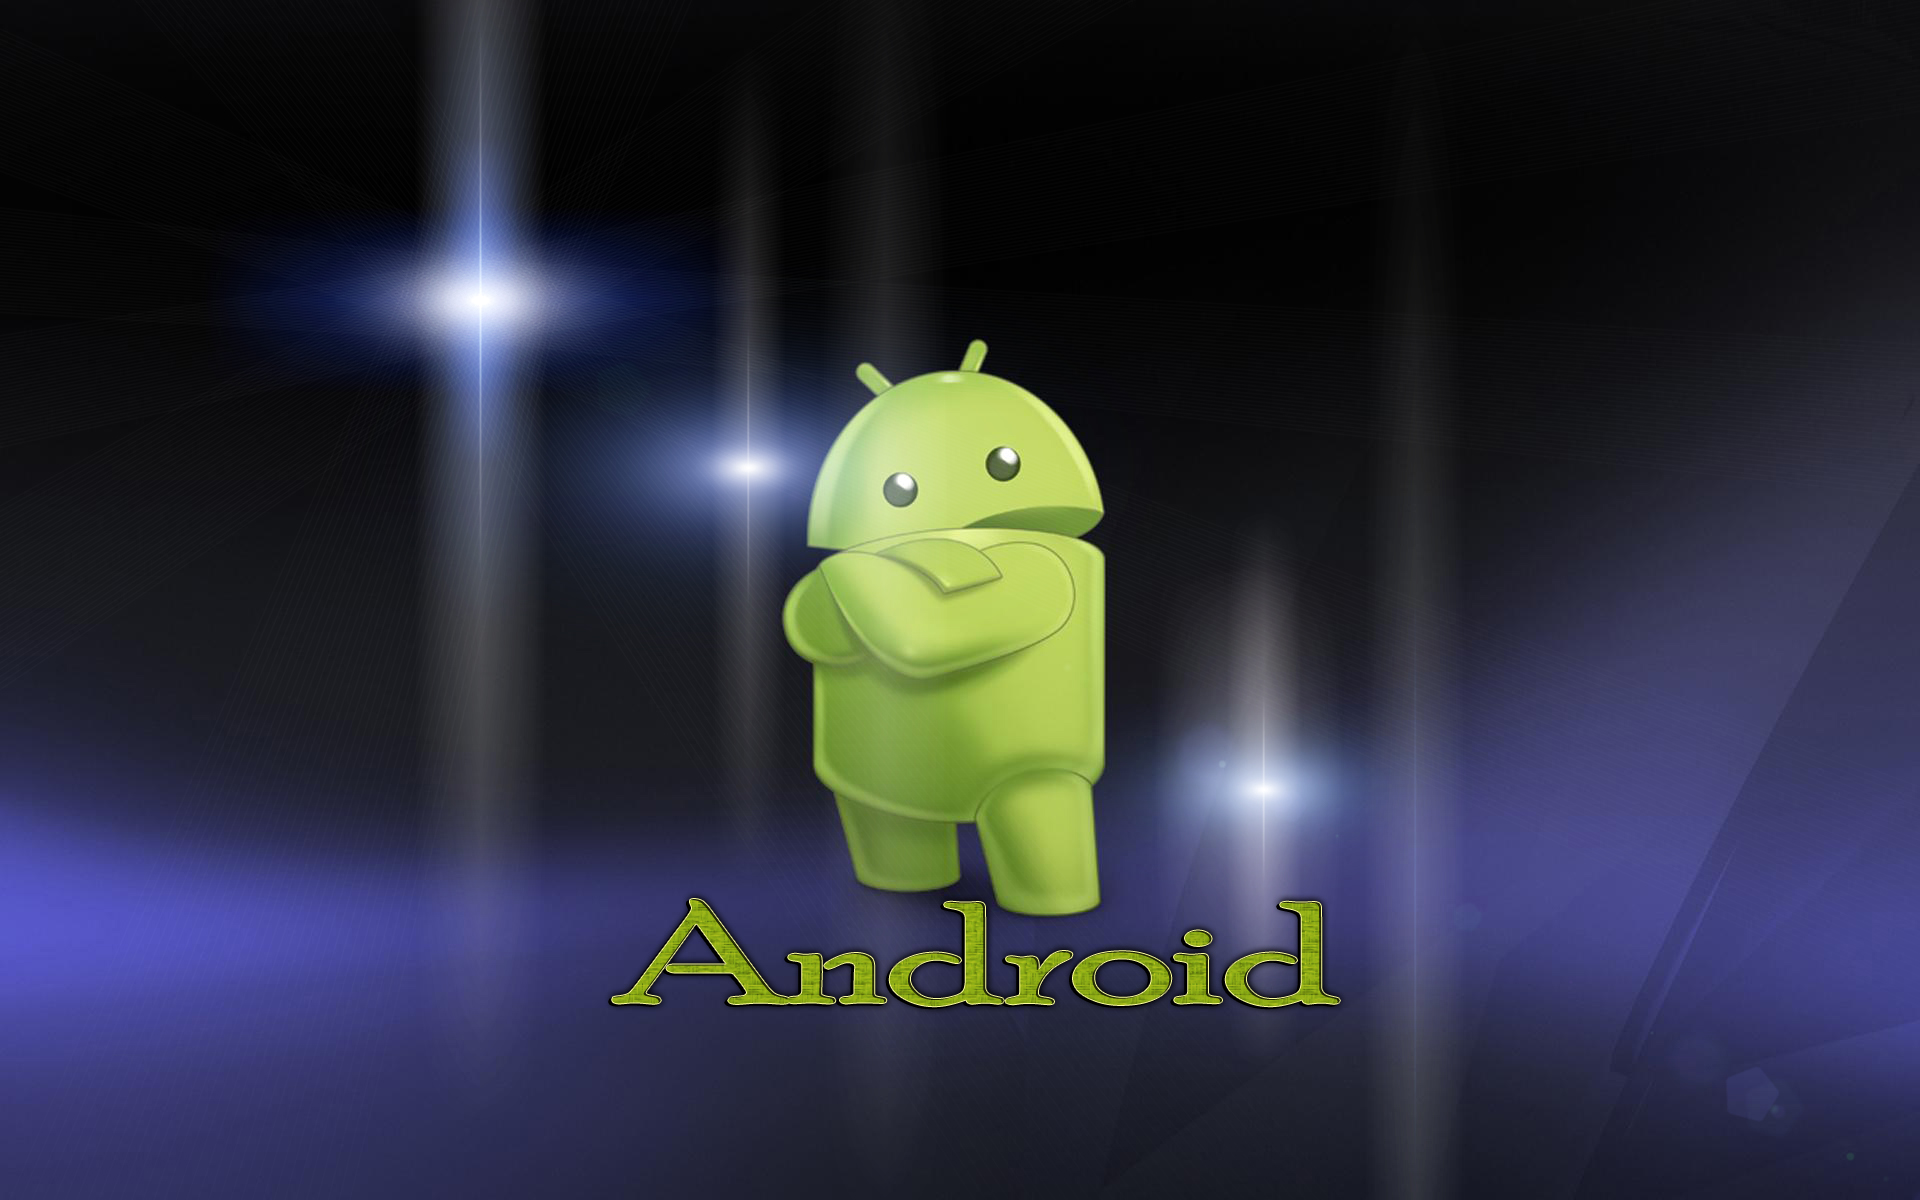 Wallpaper Cool Android Logo